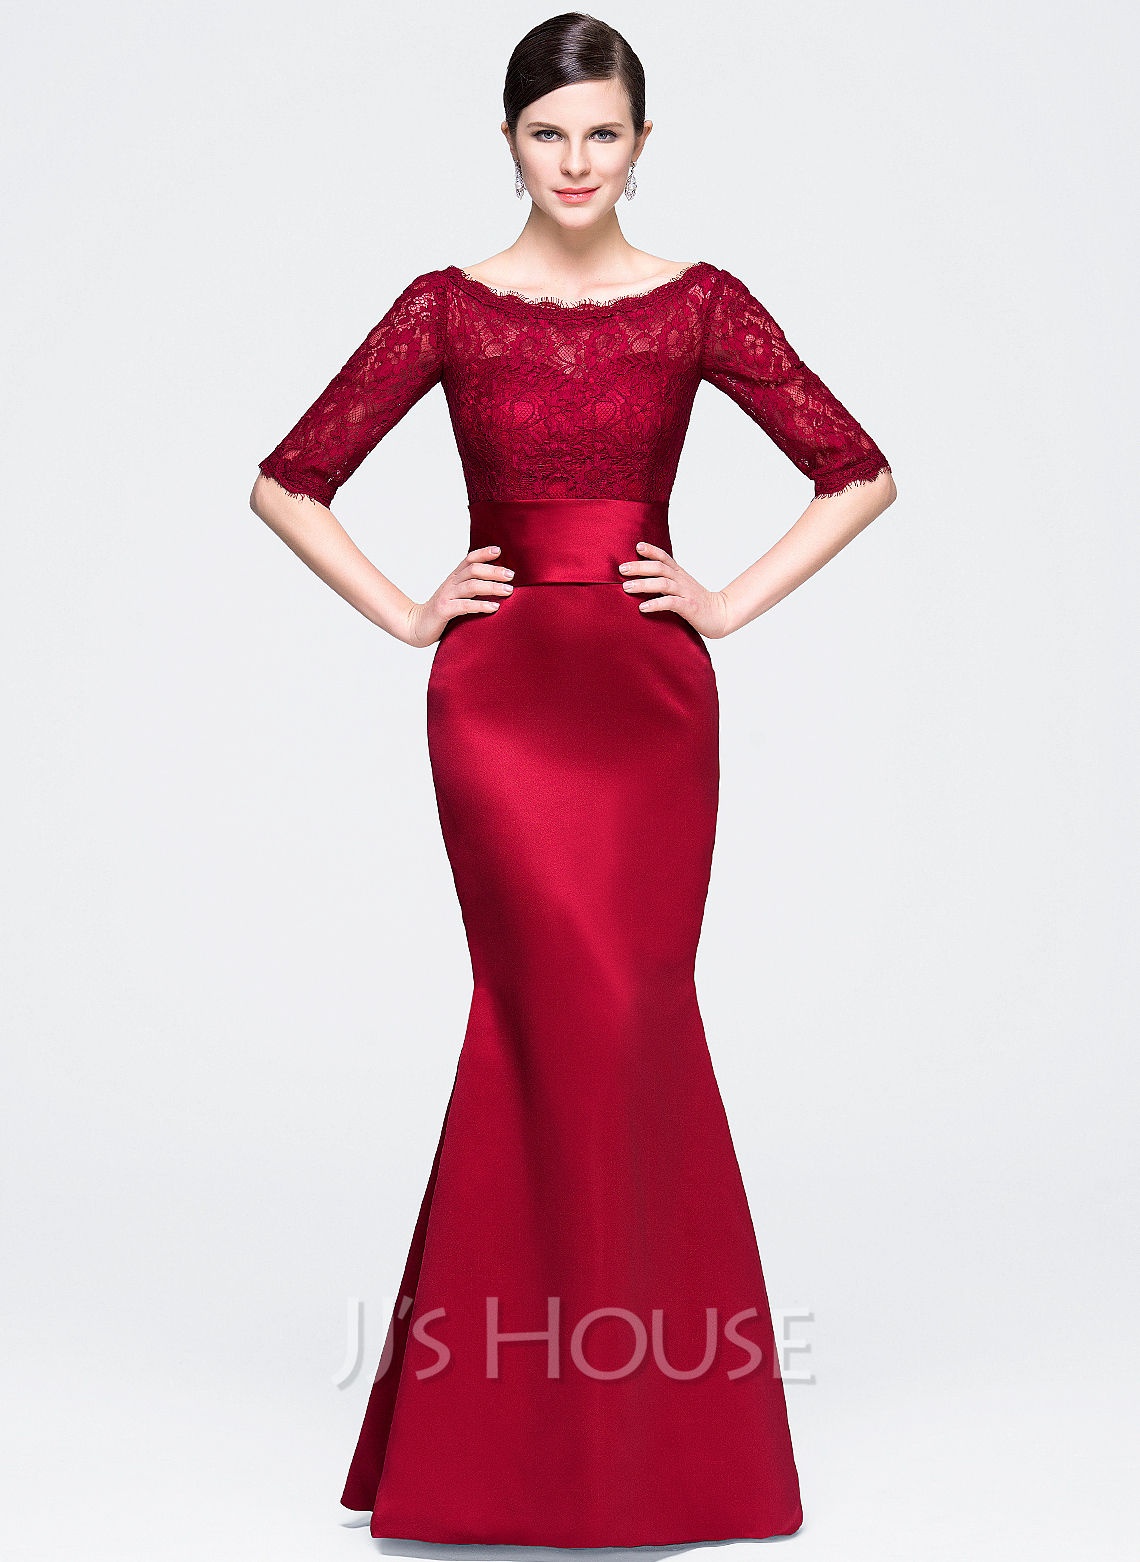 07c56ae34 Trumpet Mermaid Scoop Neck Floor-Length Satin Lace Evening Dress. Loading  zoom